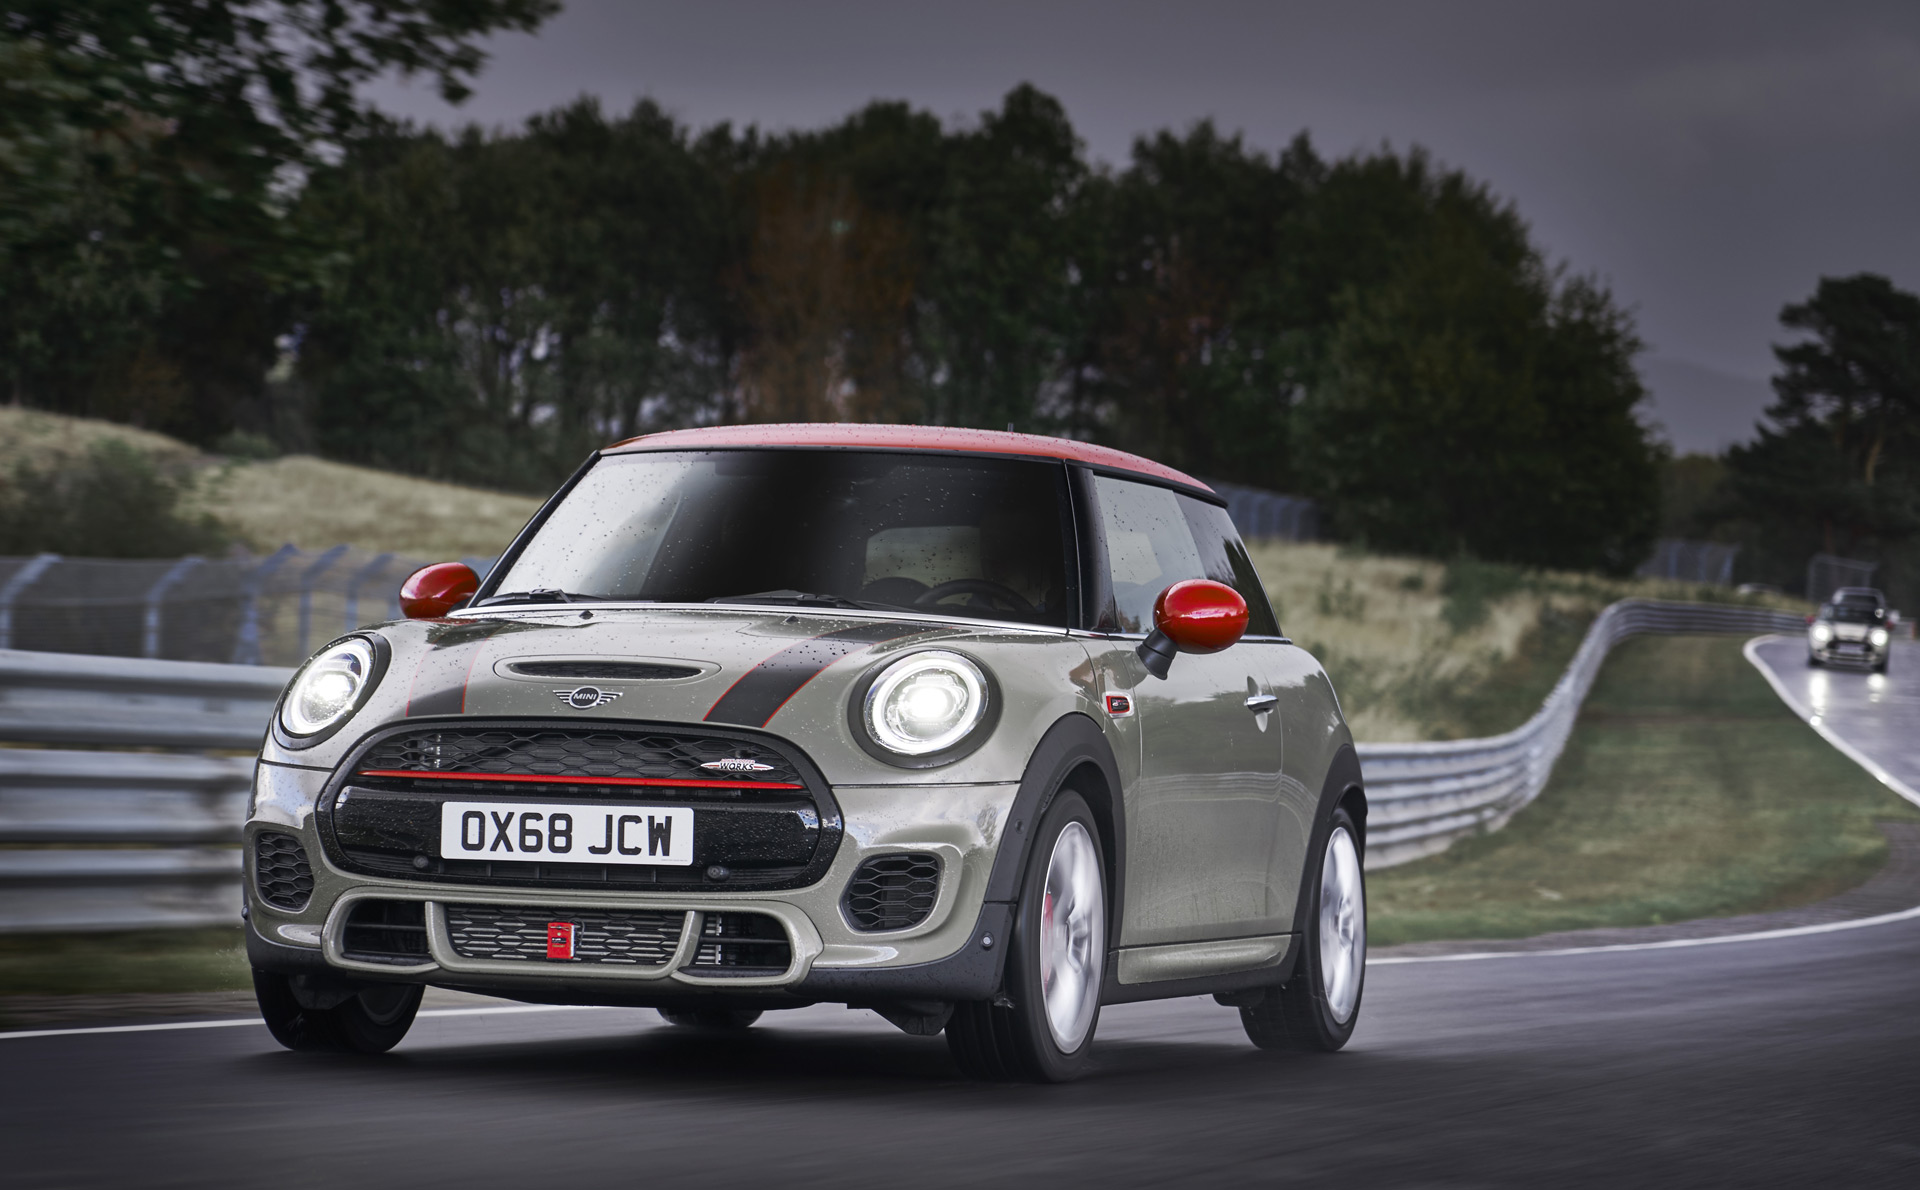 2019 Mini John Cooper Works Hardtop And Convertible Make Debut